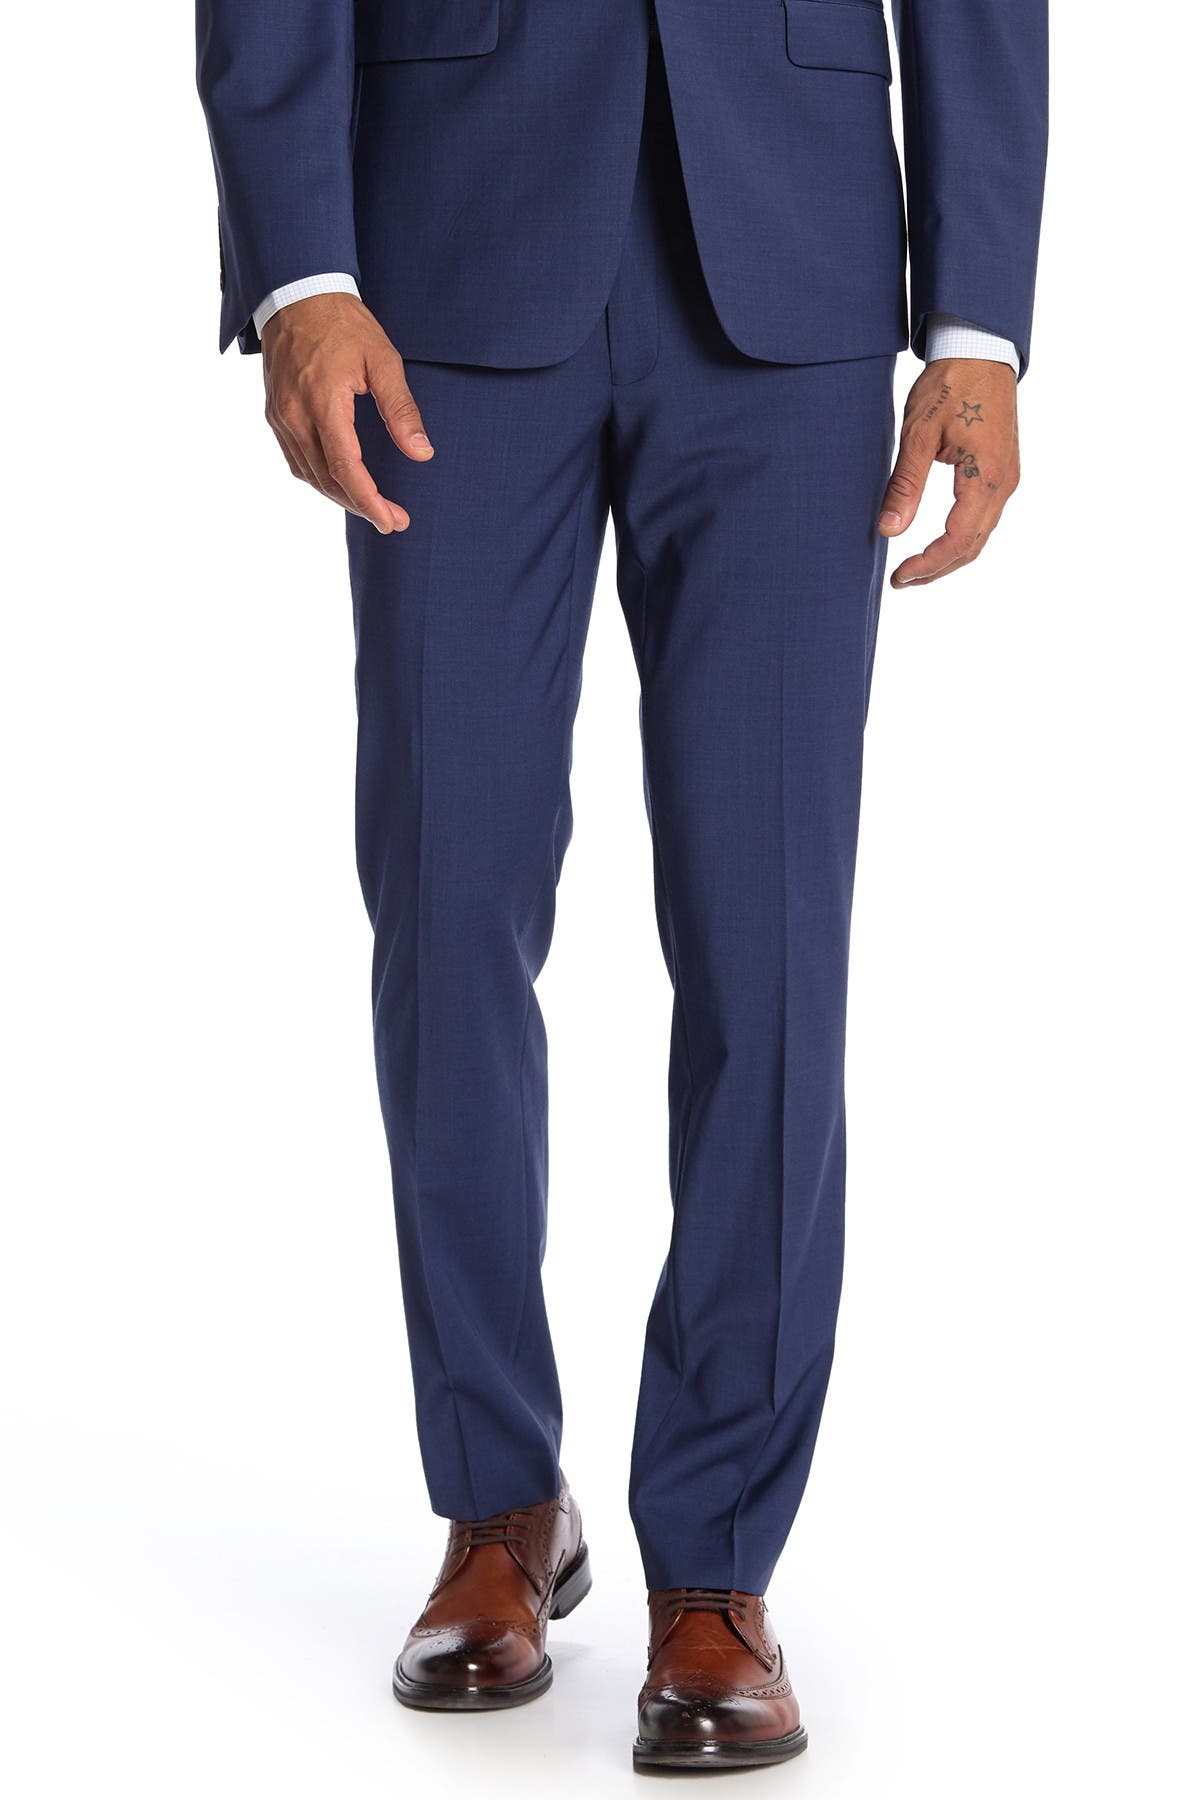 Image of Calvin Klein Twill Blue Skinny Fit Suit Separate Pants